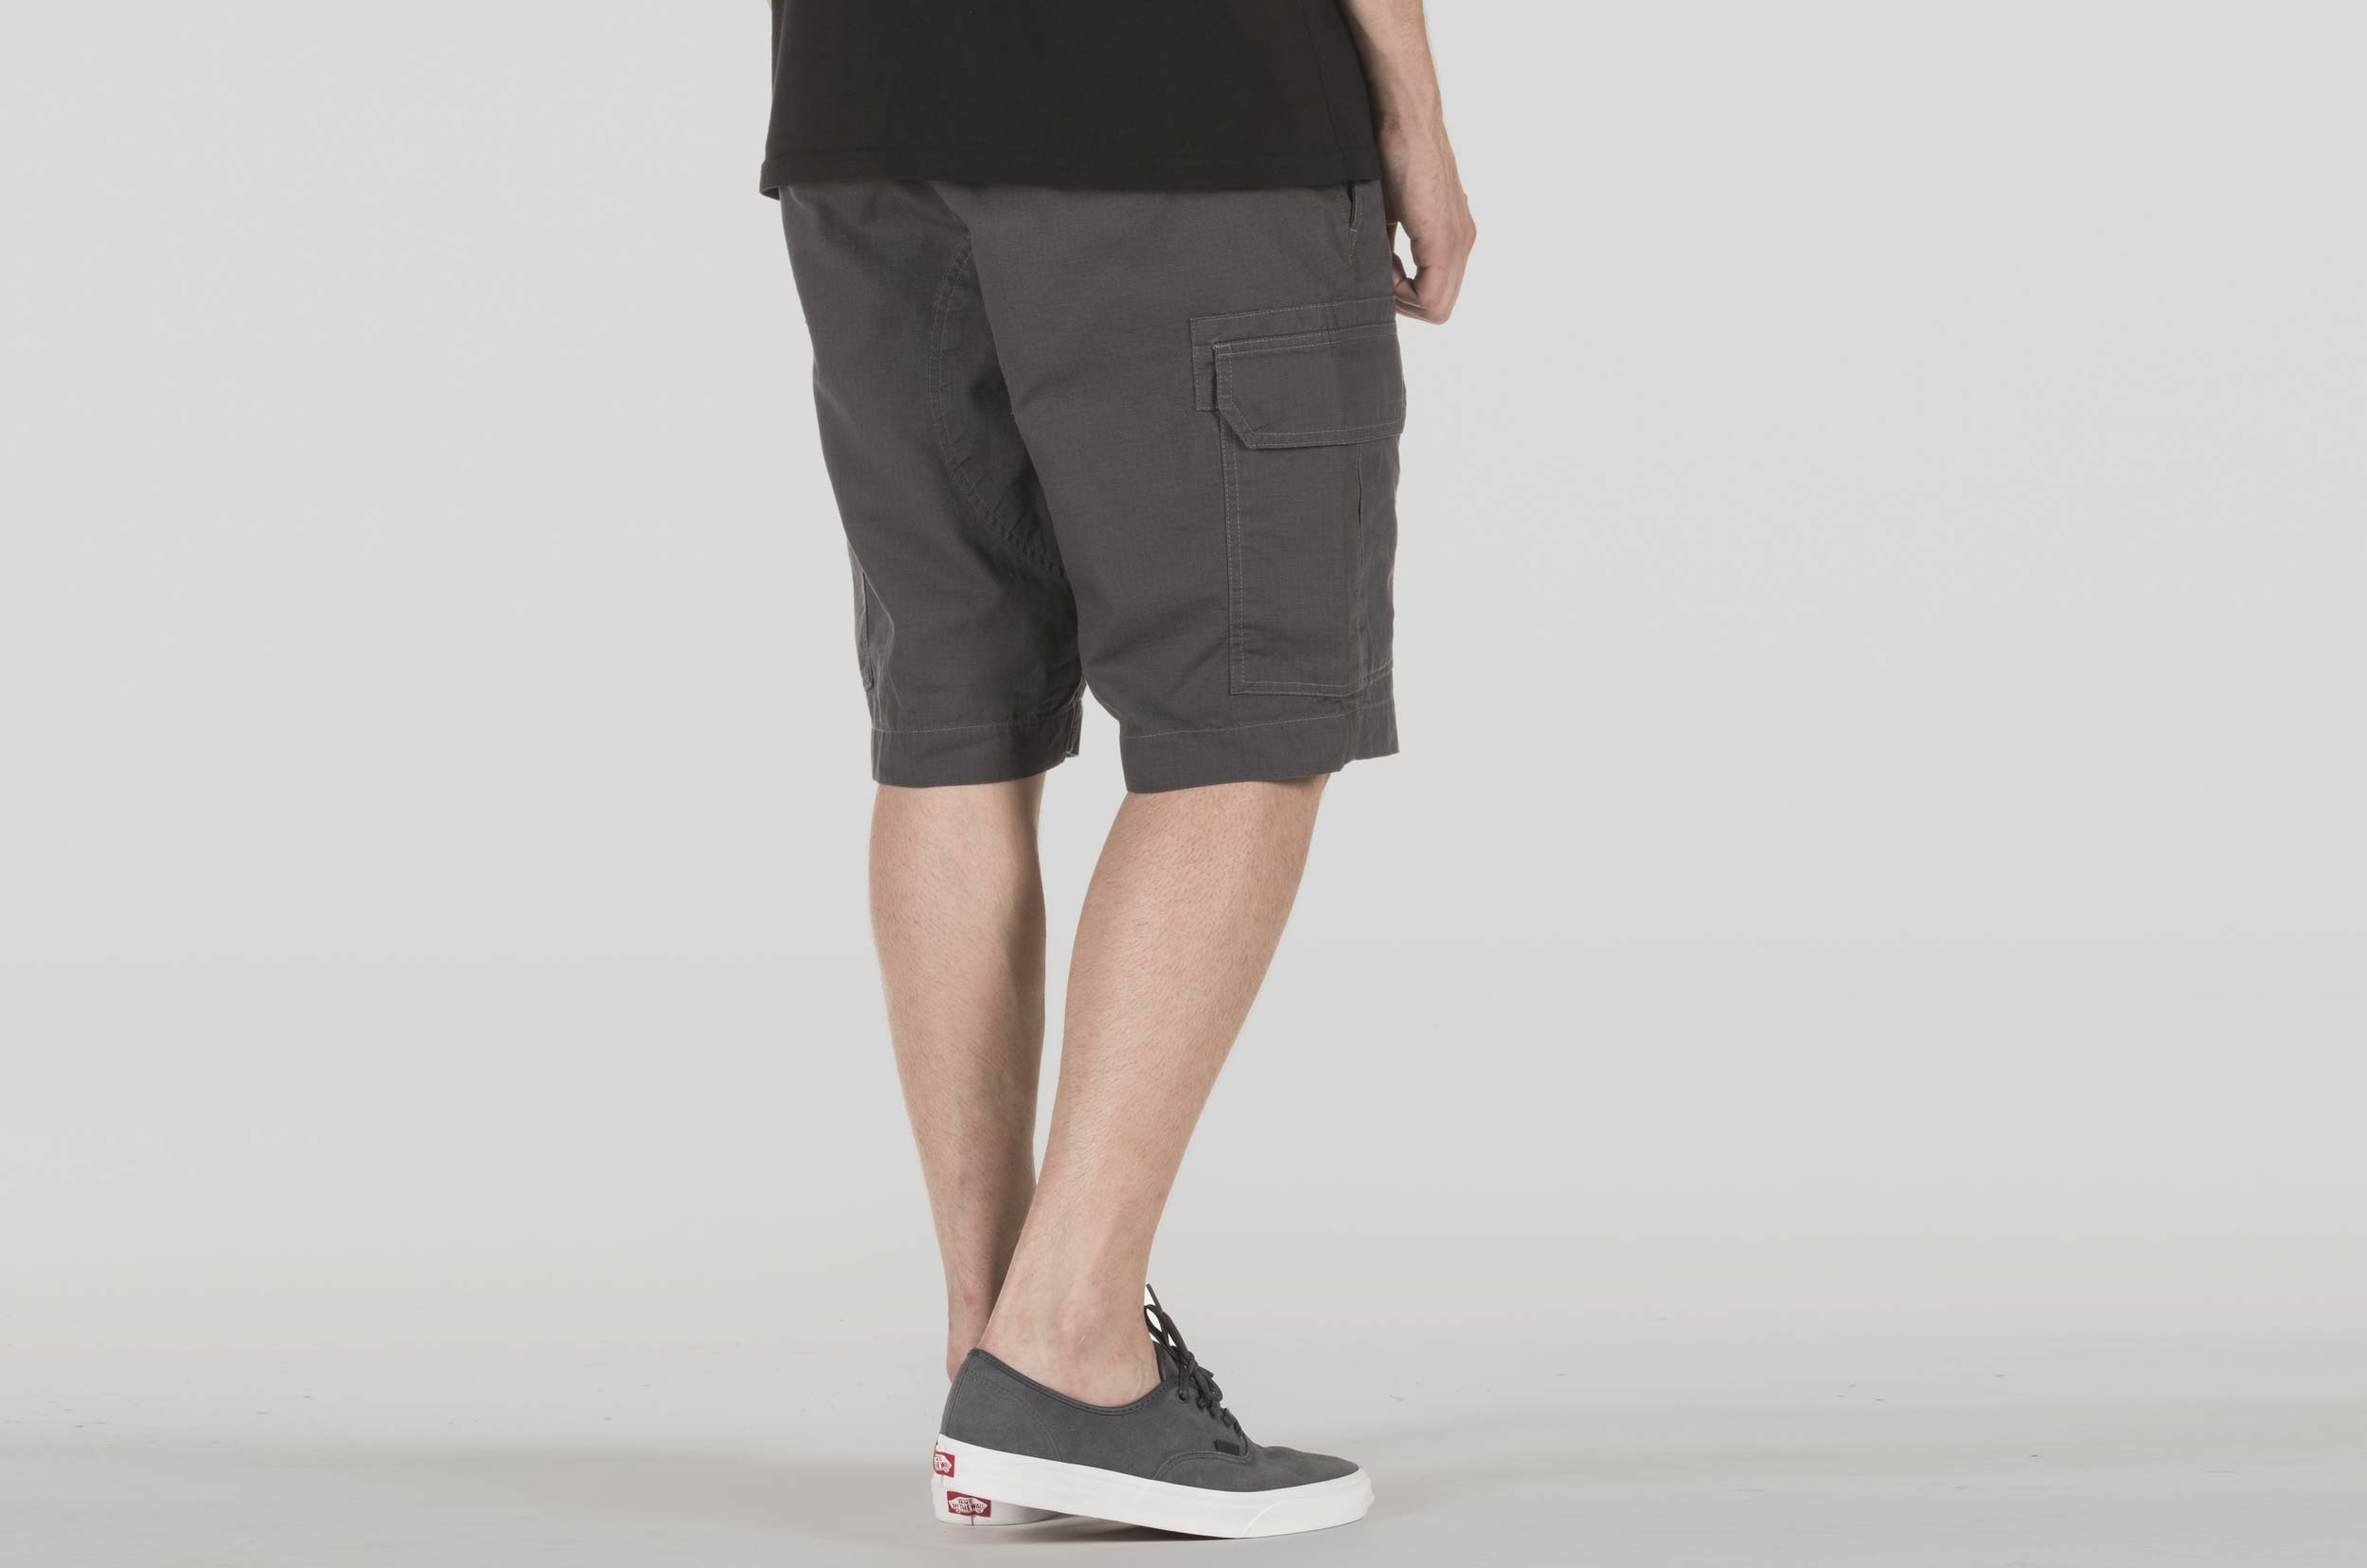 DICKIES NEW YORK SHORT 01-220065-CHARCOAL GREY Ανθρακί